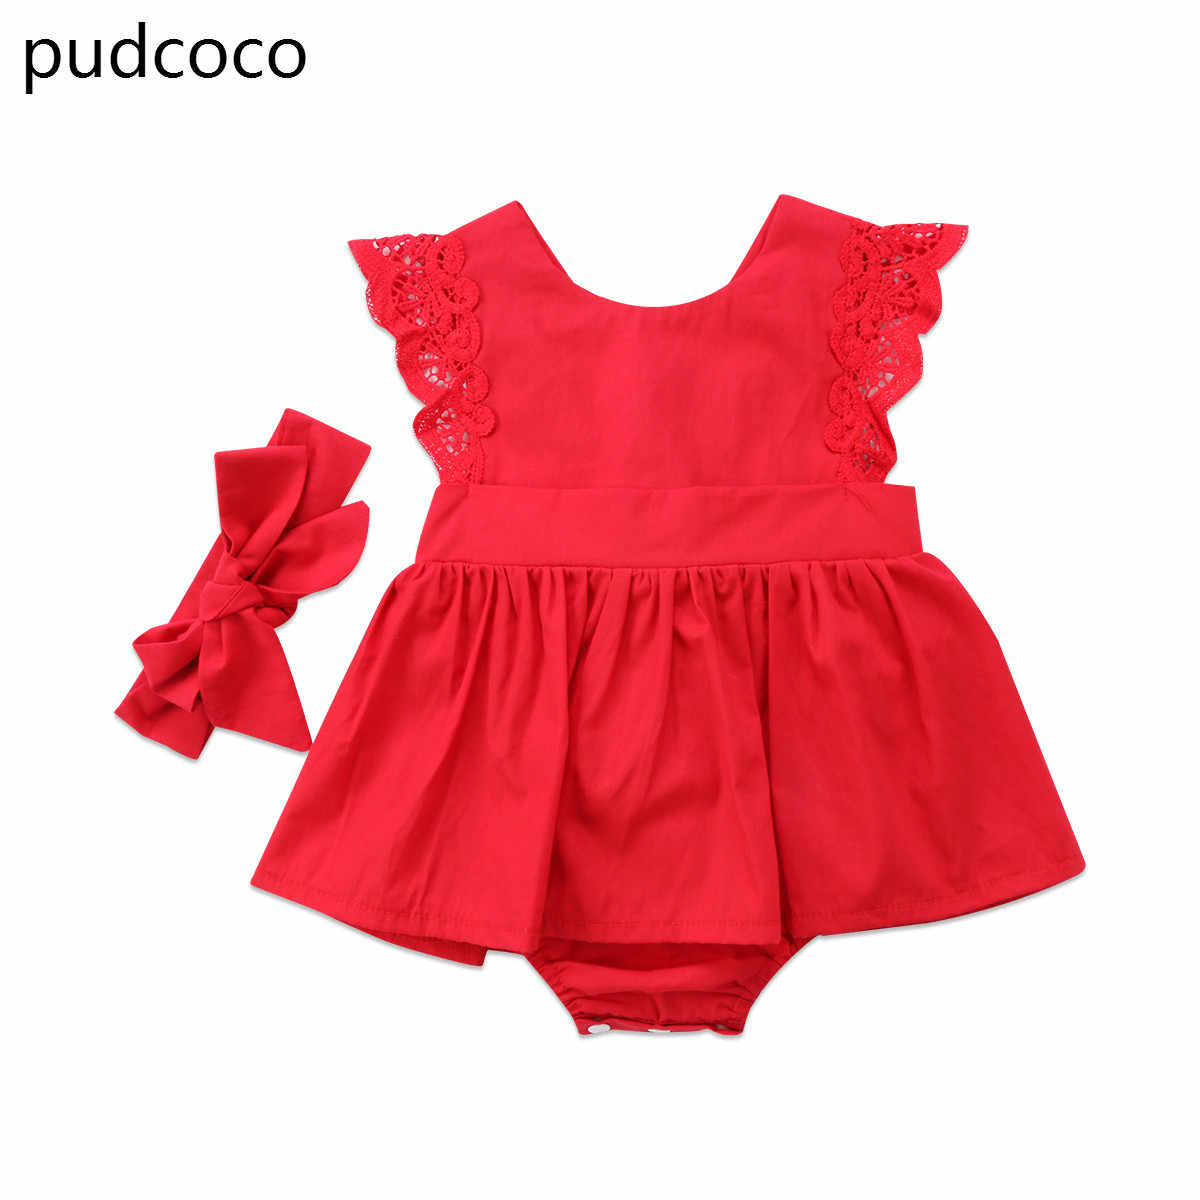 8039503a5c2f Detail Feedback Questions about Red Christmas Baby Girl Lace Princess  Romper Dress Summer Backless Flower Dress Jumpsuit Clothes Xmas Headband  Outfits ...